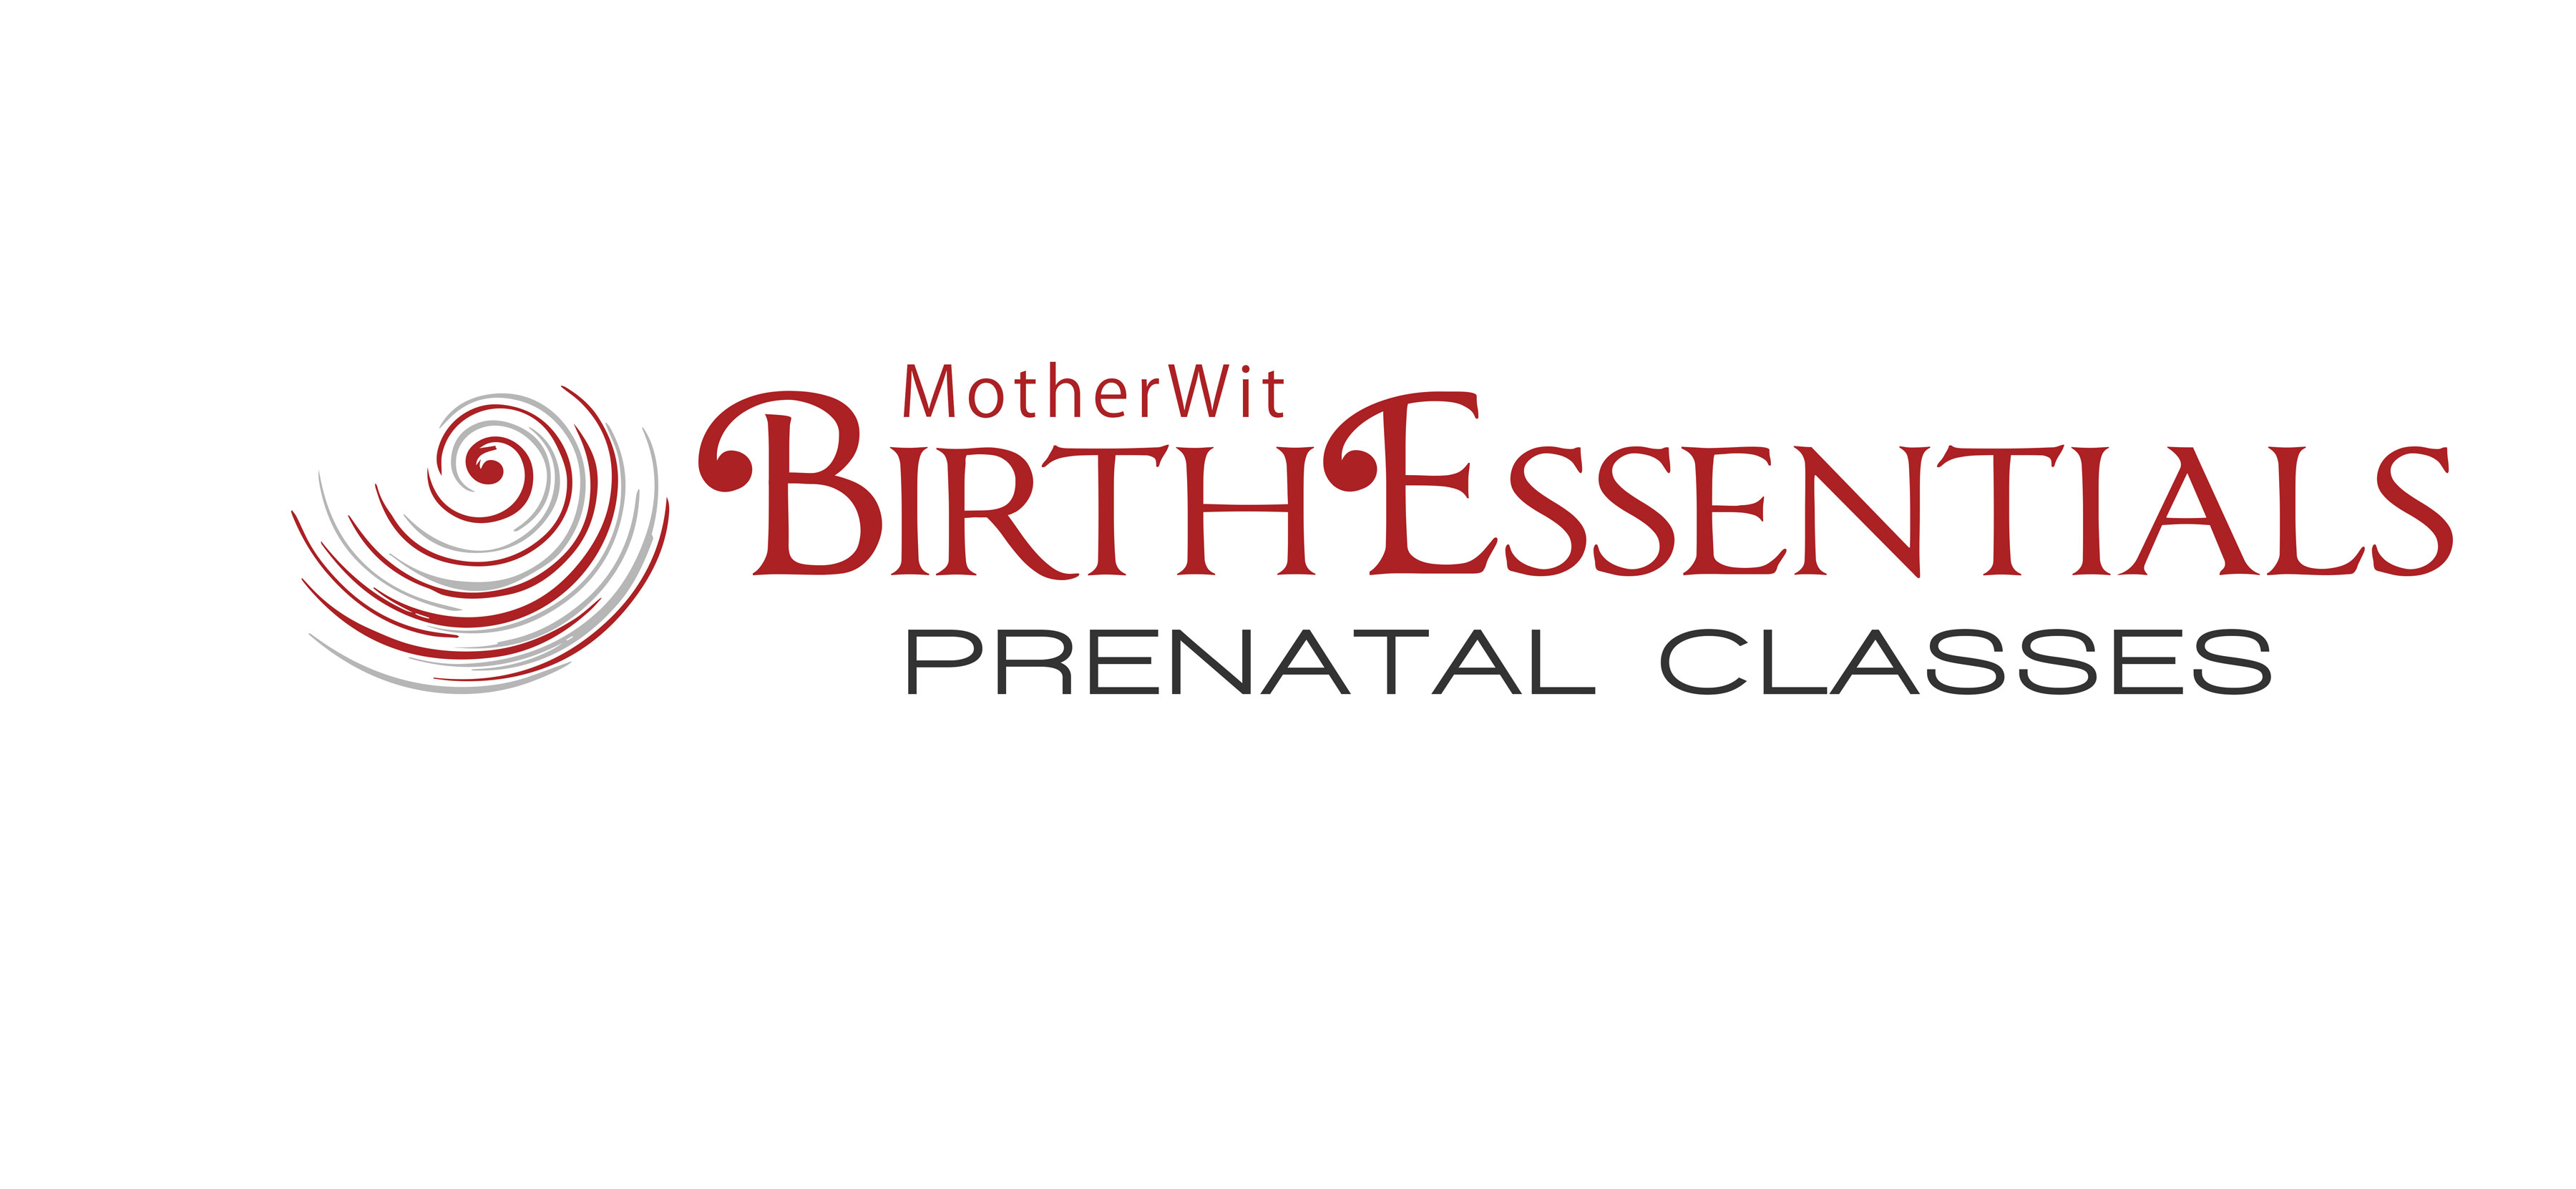 Birth Essentials Prenatal Classes